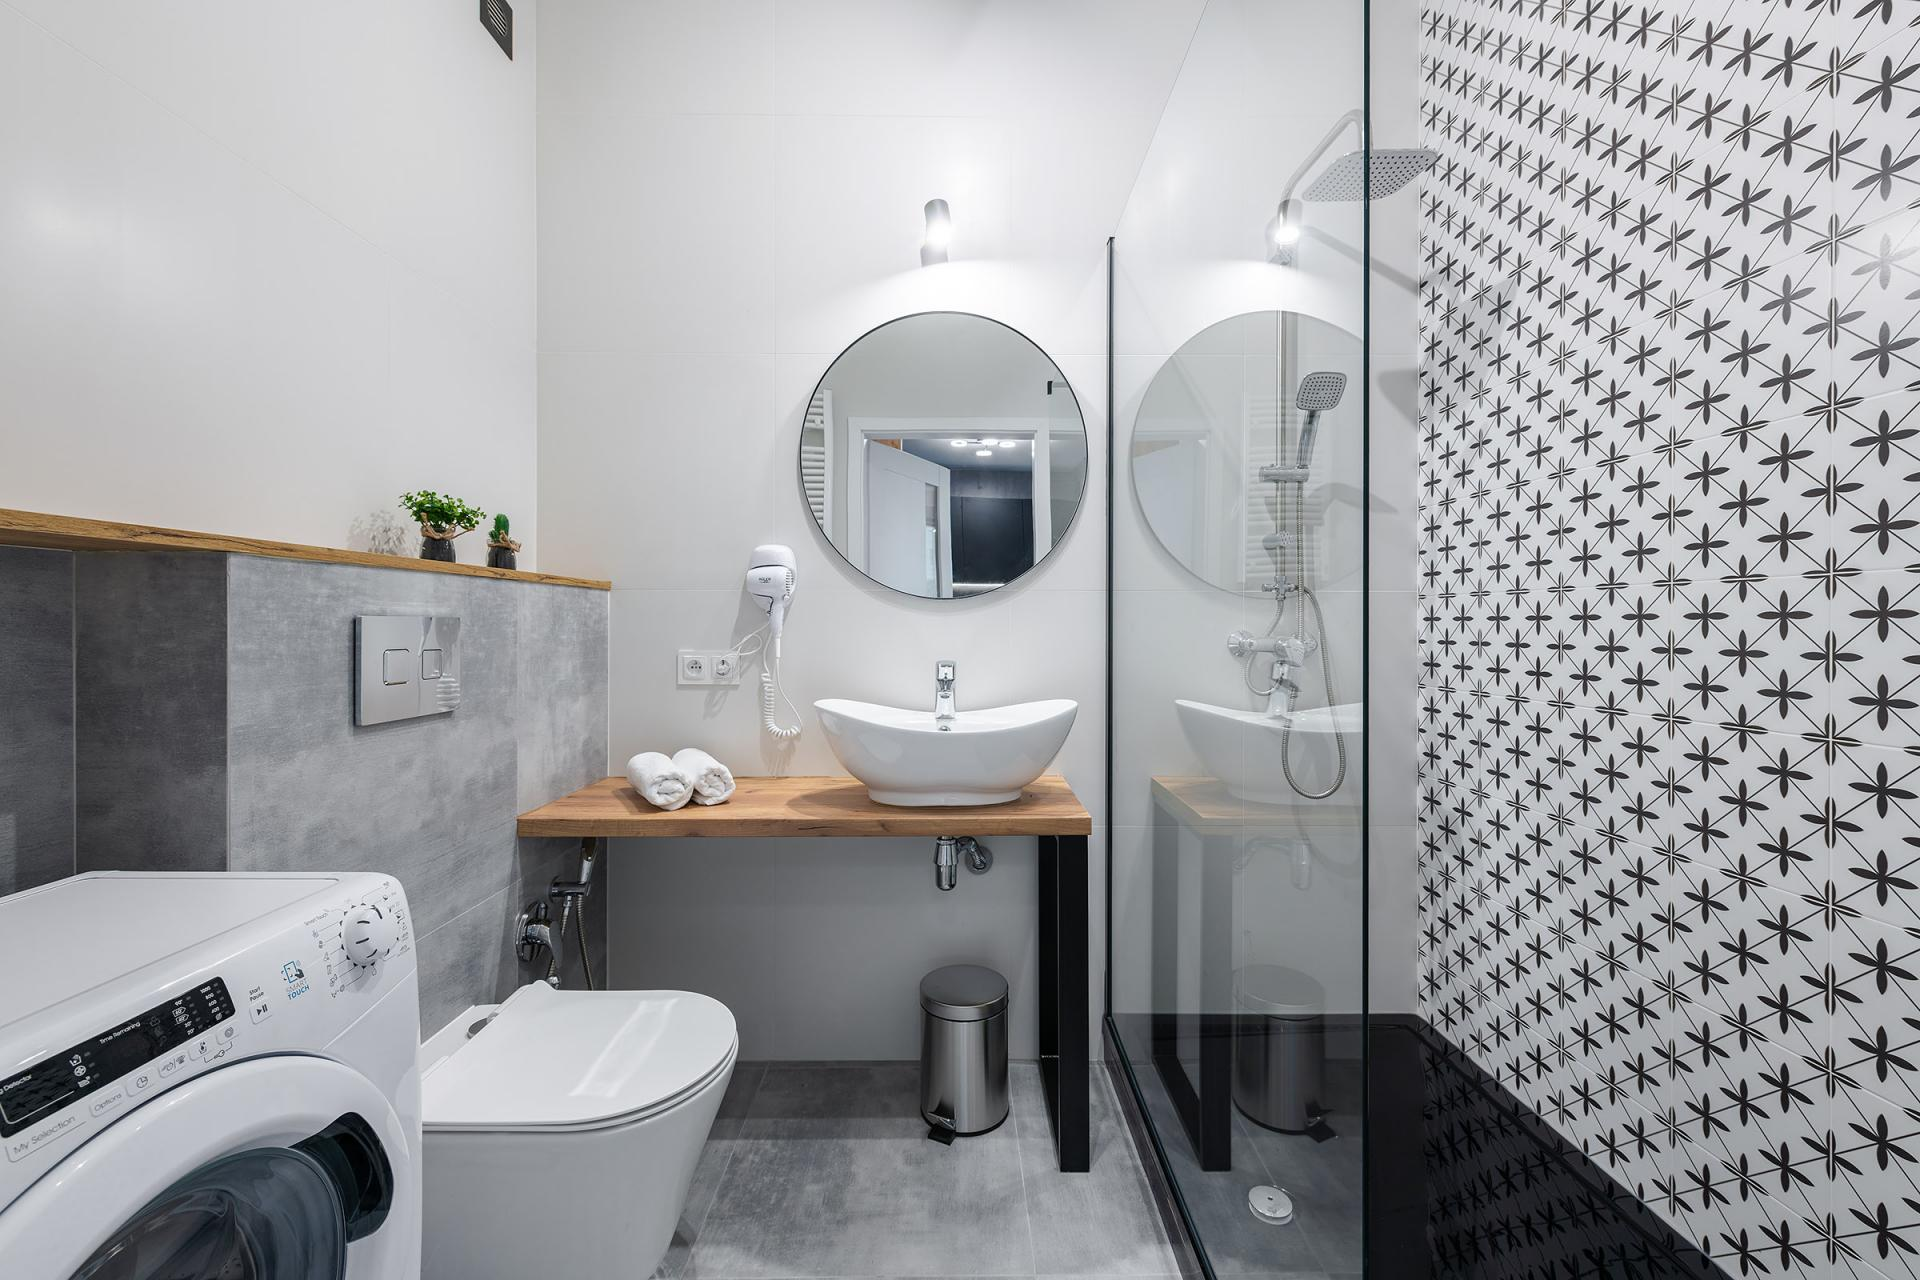 Modern bathroom at Cybernetyki 4 Apartment, Sluzewiec, Warsaw - Citybase Apartments